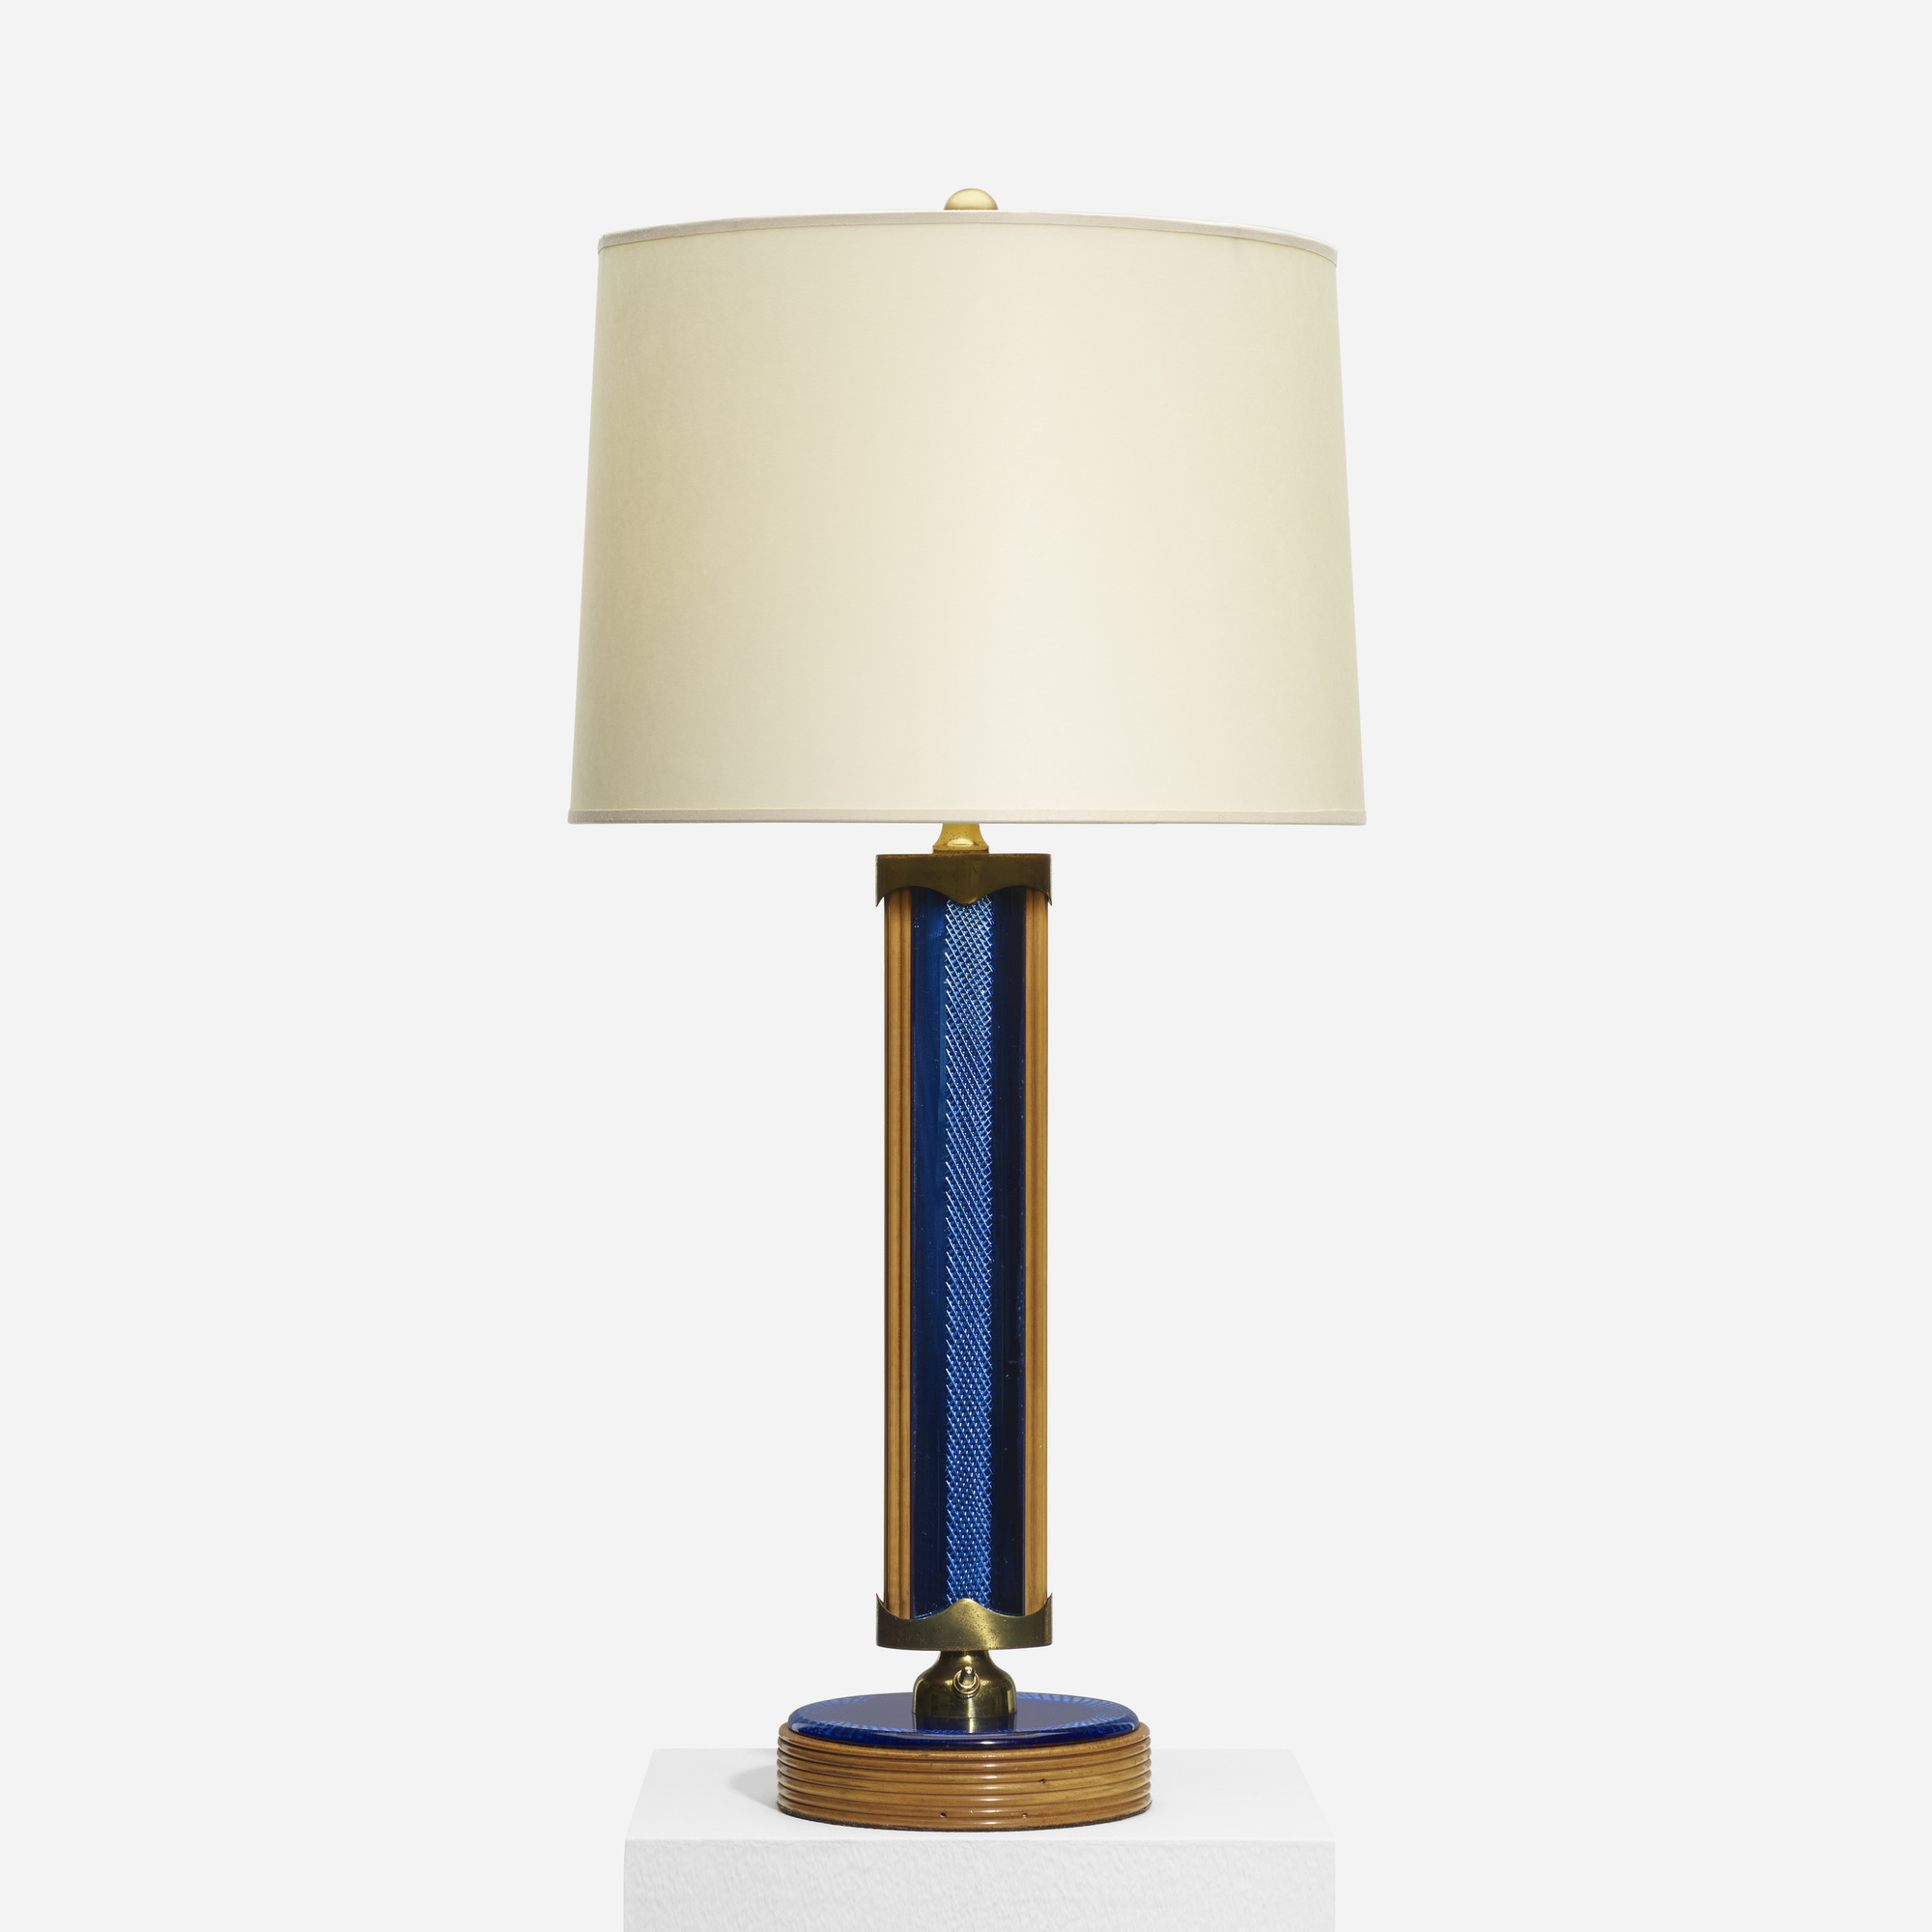 237: Pietro Chiesa / table lamp (1 of 3)